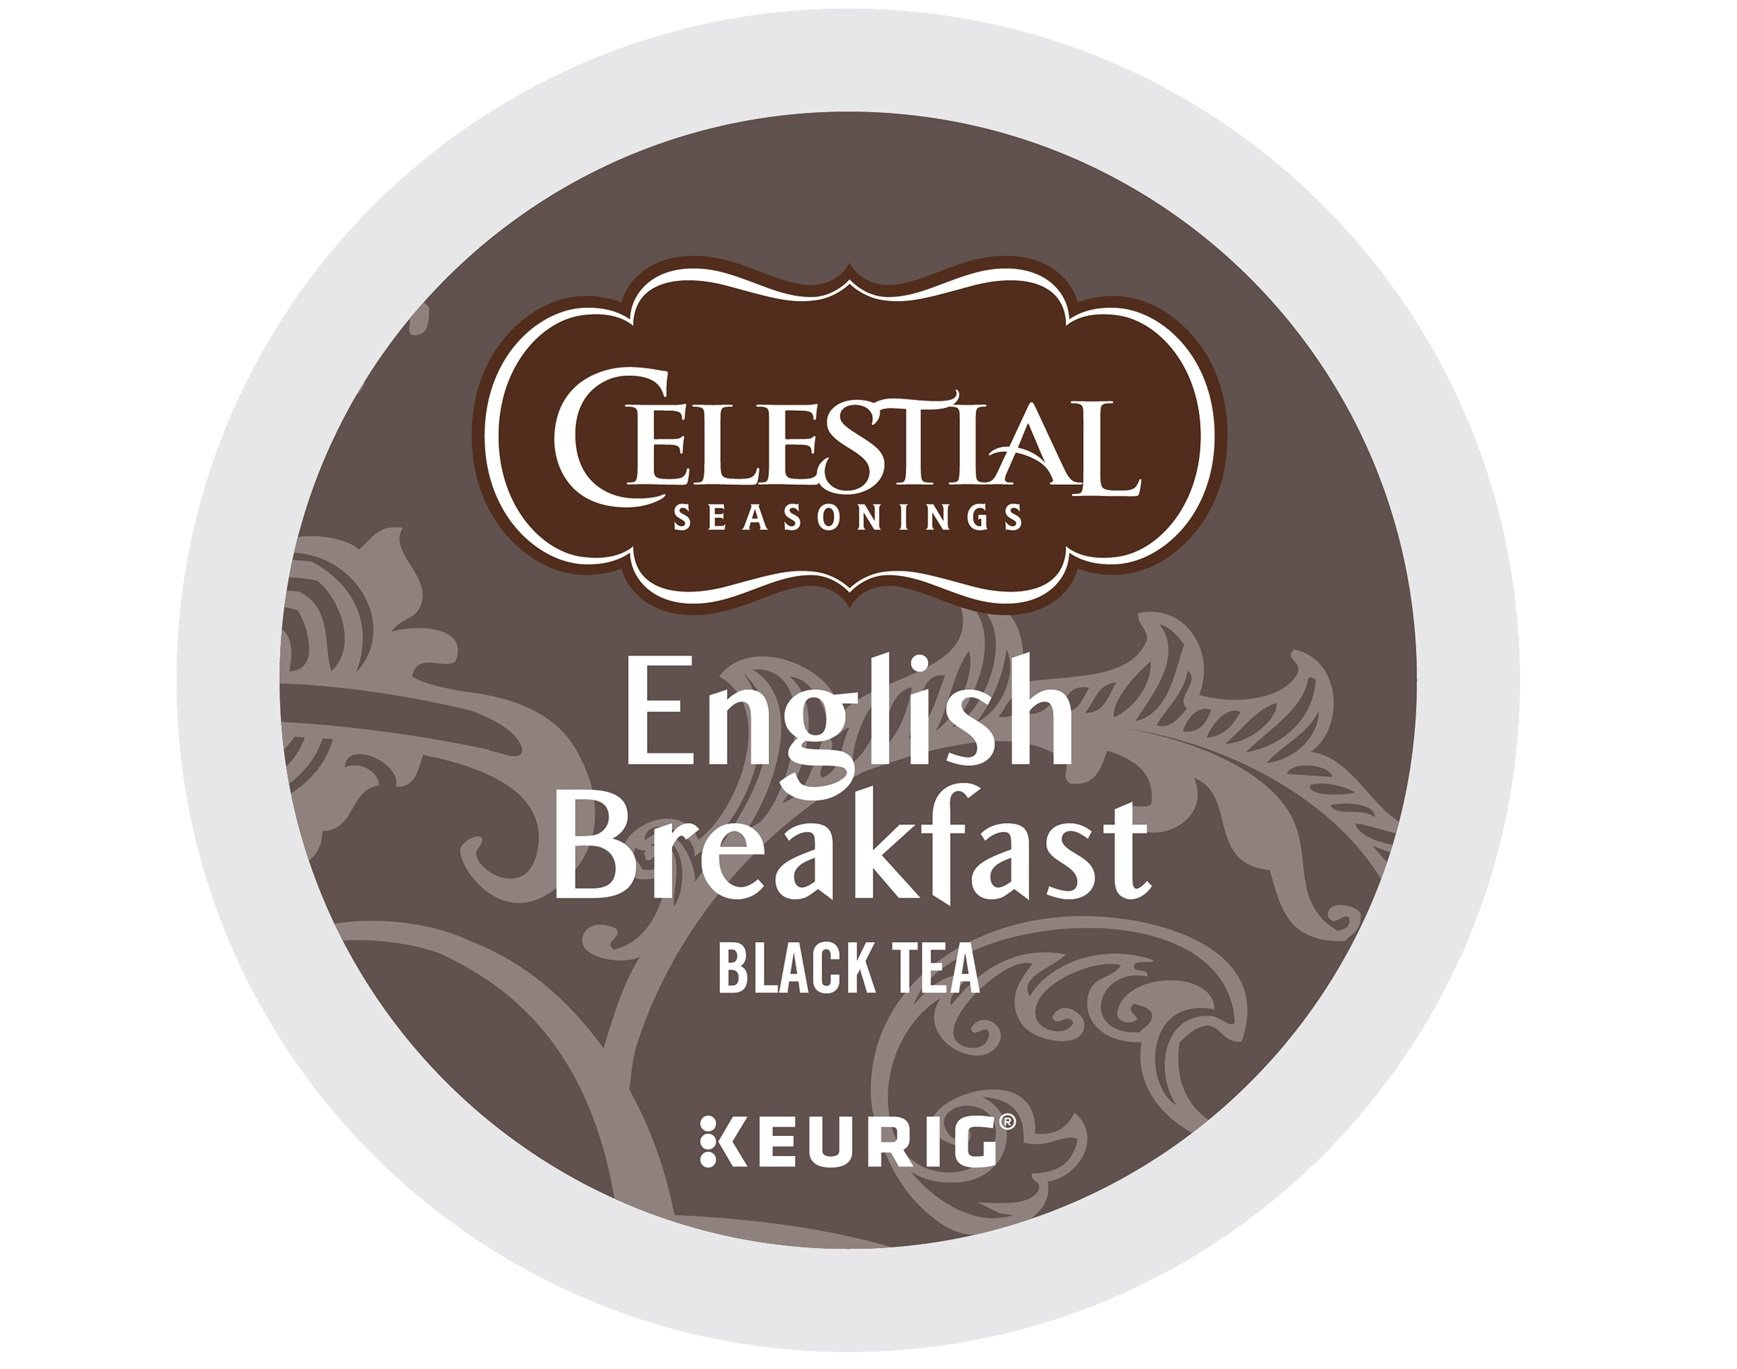 Celestial Seasonings English Breakfast Black Tea, Single Serve Coffee K-Cup Pod, Tea, 72